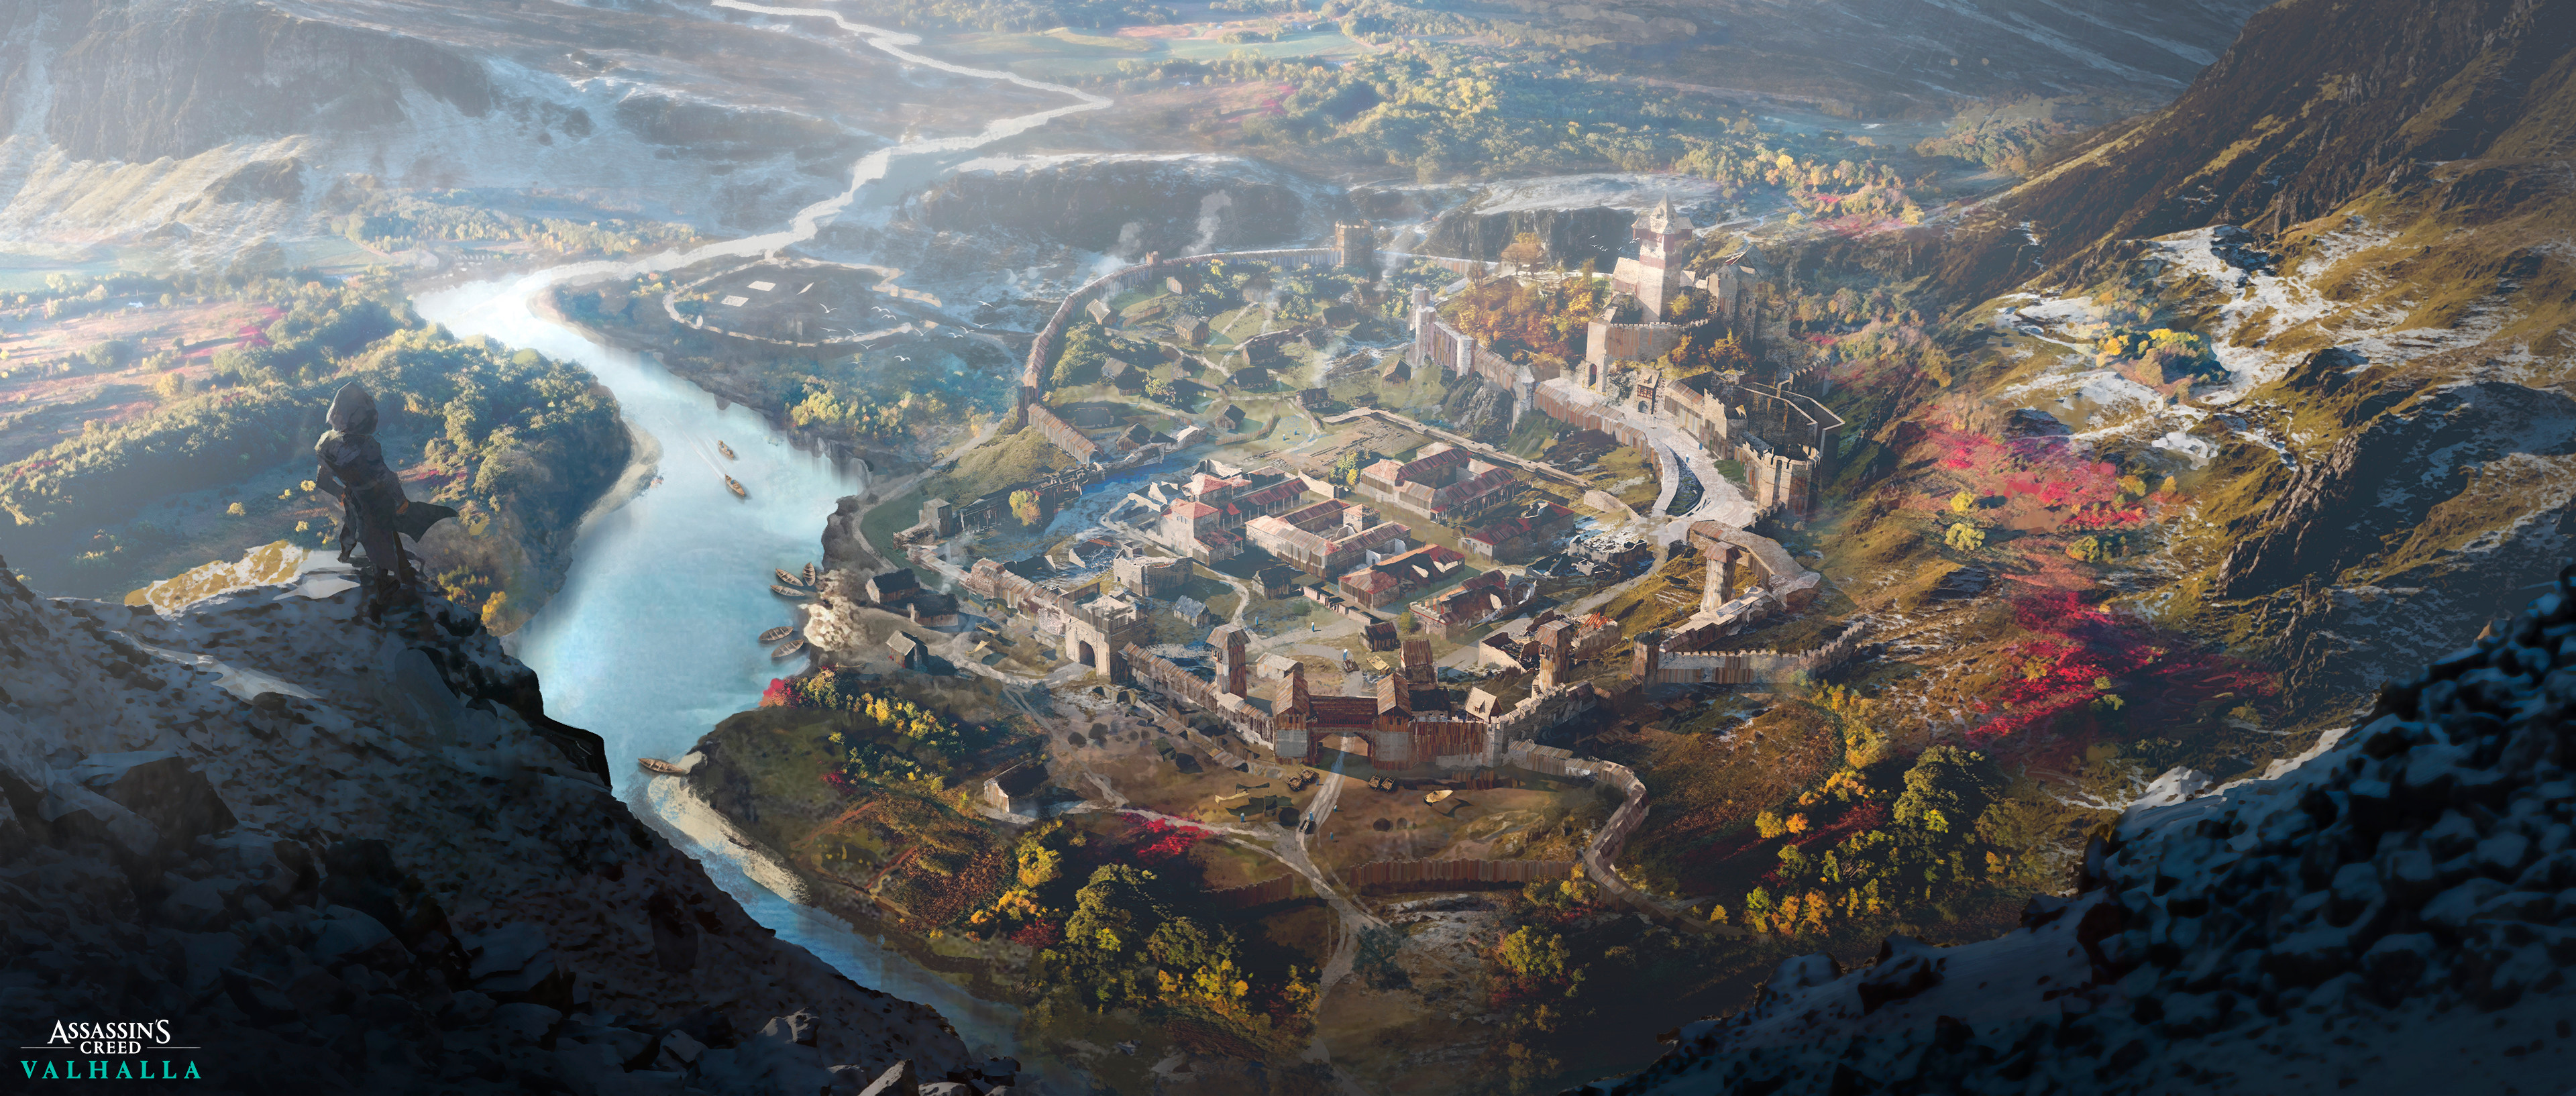 General 3840x1634 Tony Zhou Shuo lake landscape standing digital painting alone video game art Assassin's Creed fan art video games digital art artwork concept art ArtStation aerial view